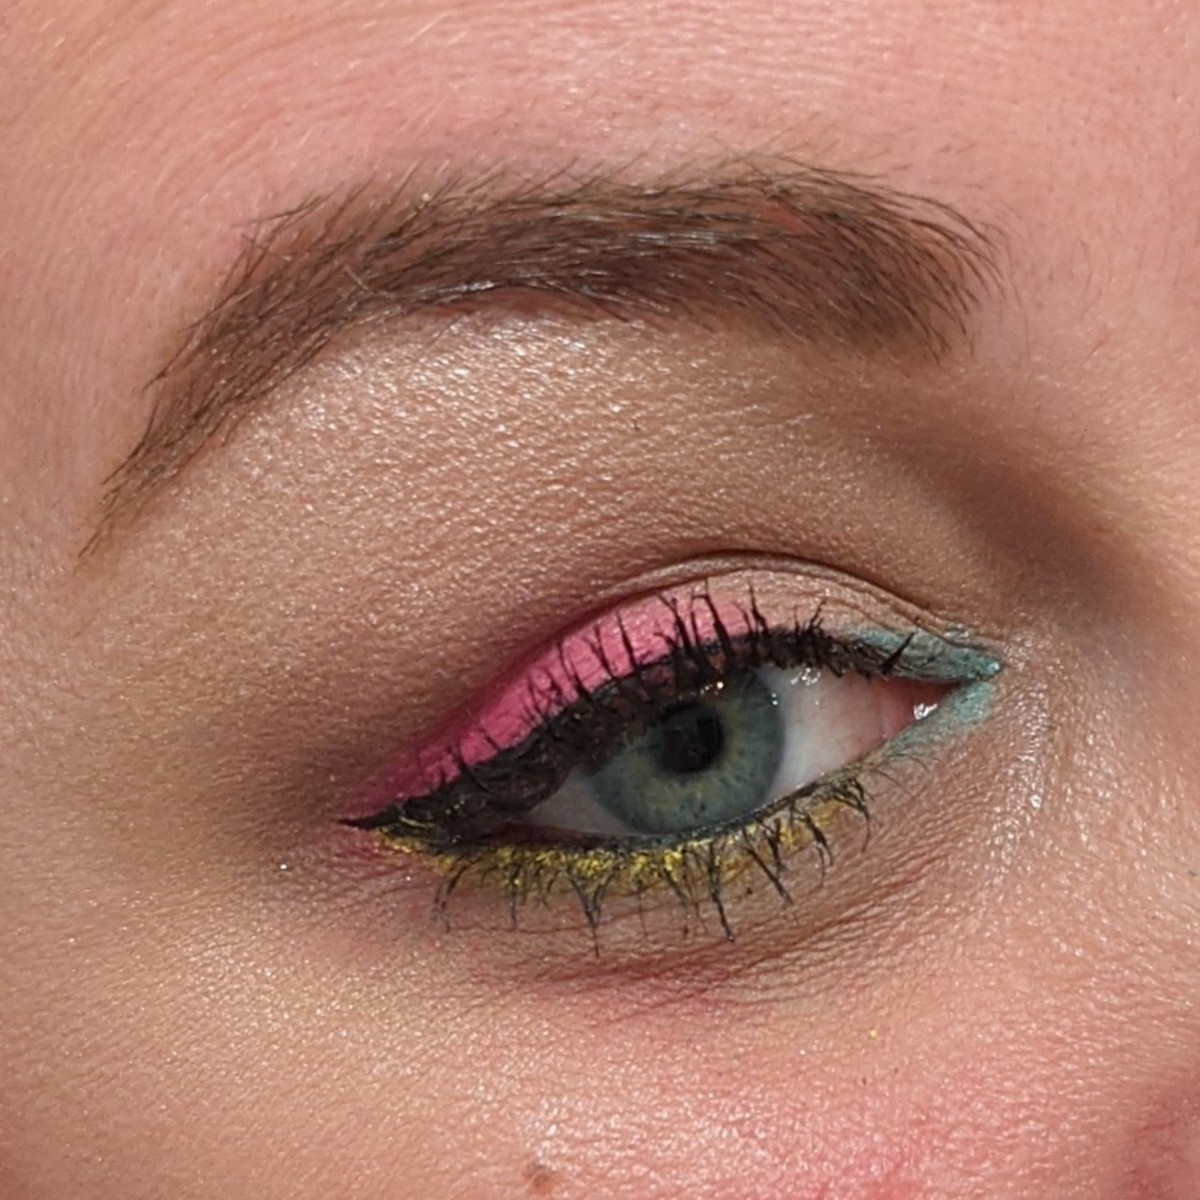 Combining different shades of eyeshadow and eyeliner will help you pump up your neon makeup look even more!